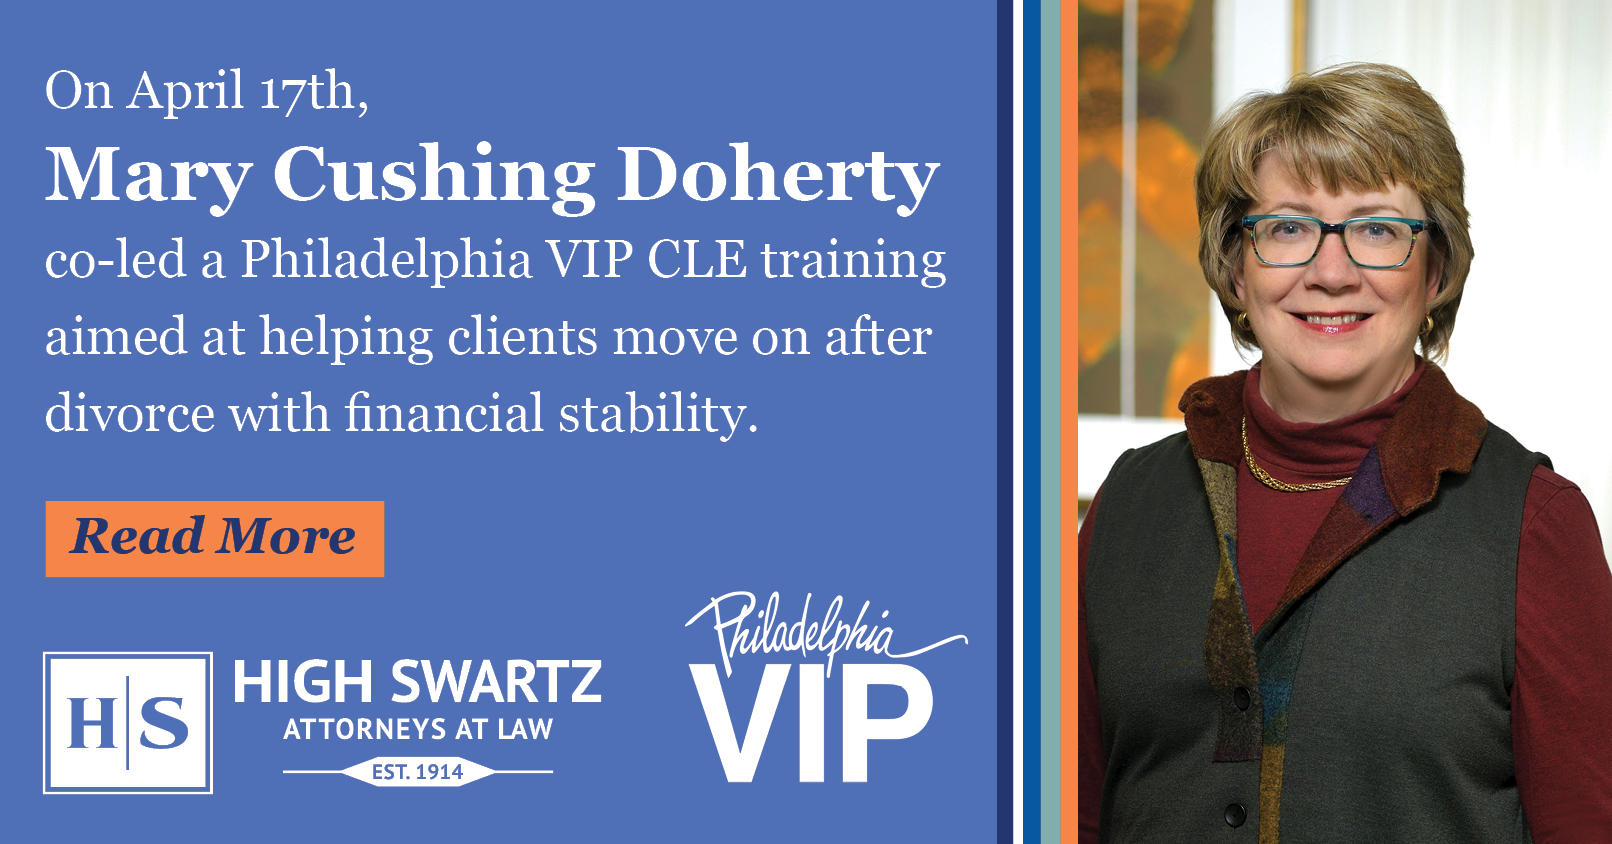 Mary Cushing Doherty leads CLE Training on Helping Clients Achieve Financial Stability After Divorce